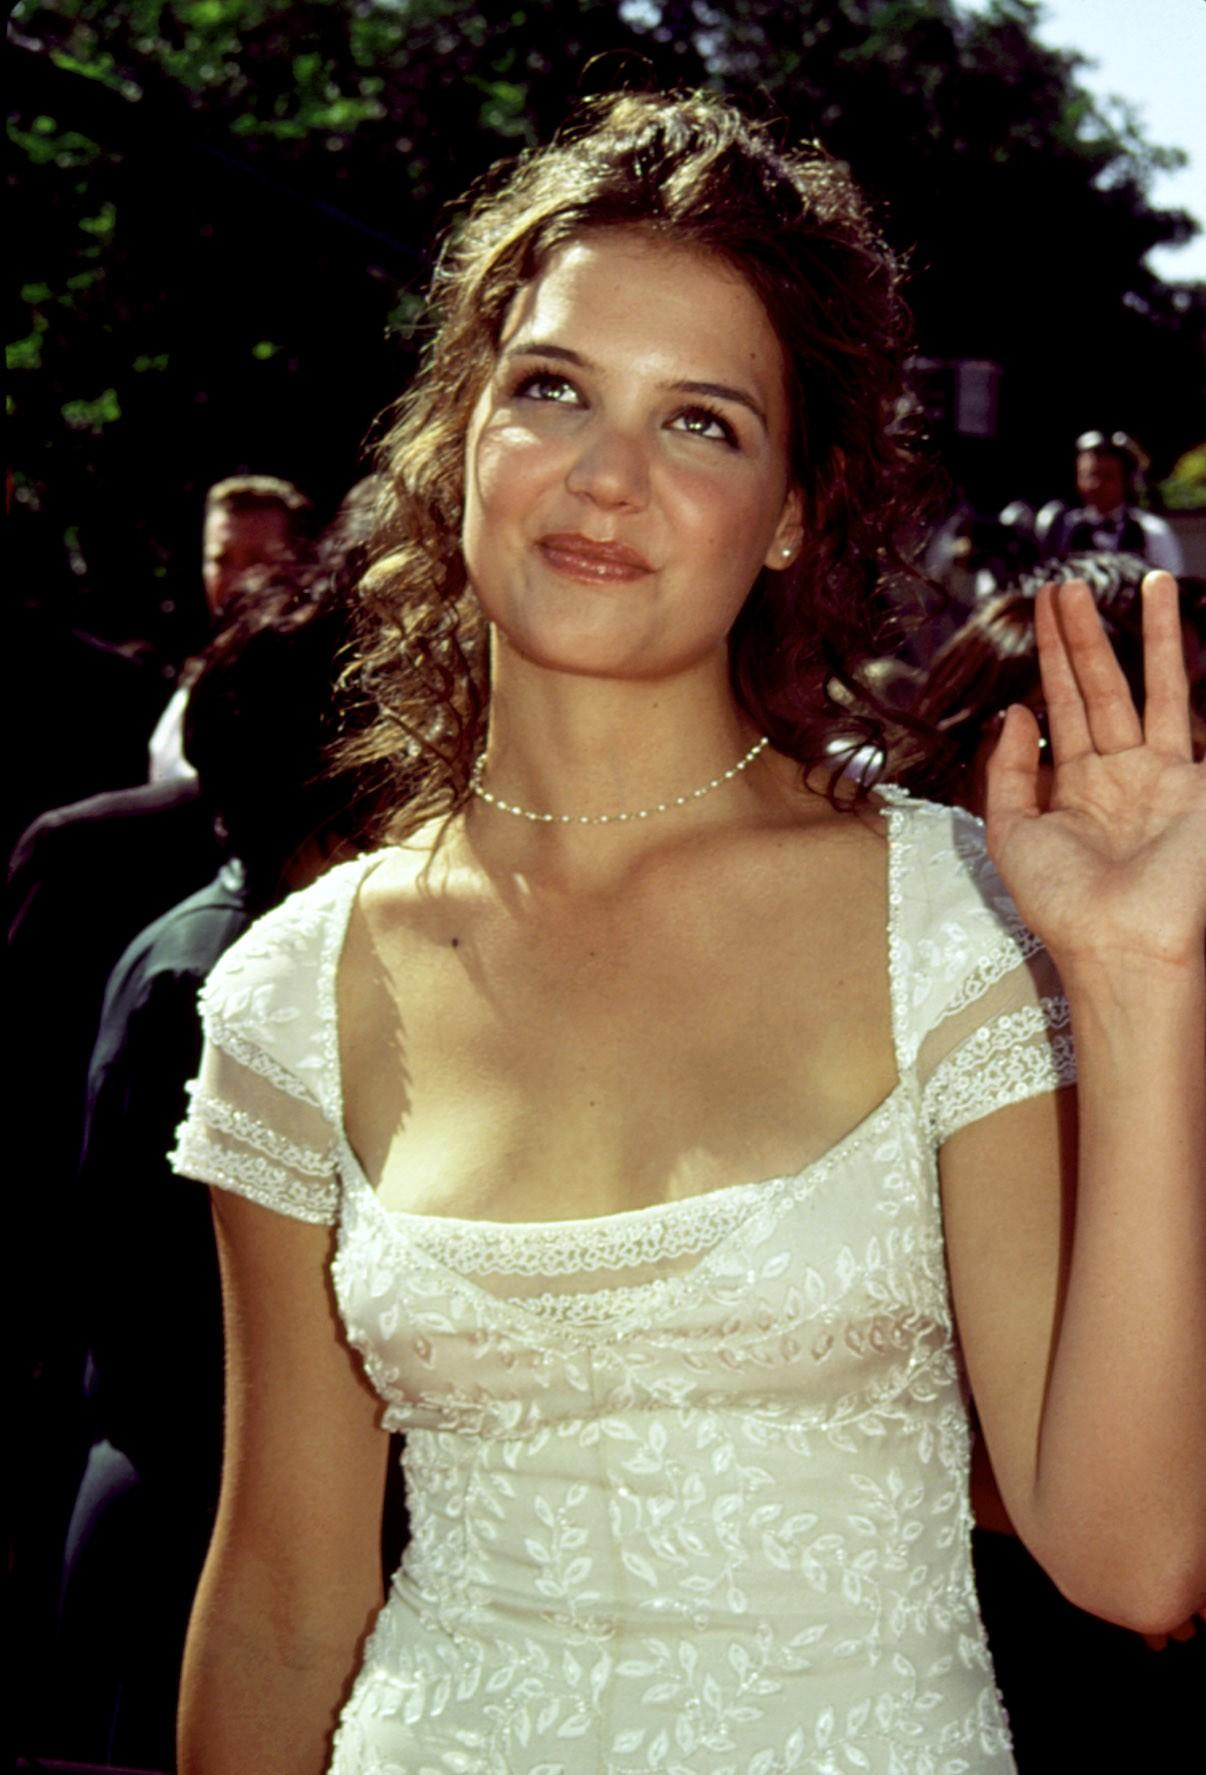 Katie Holmes: Girl Next Door Turned Fashionista | Fandango